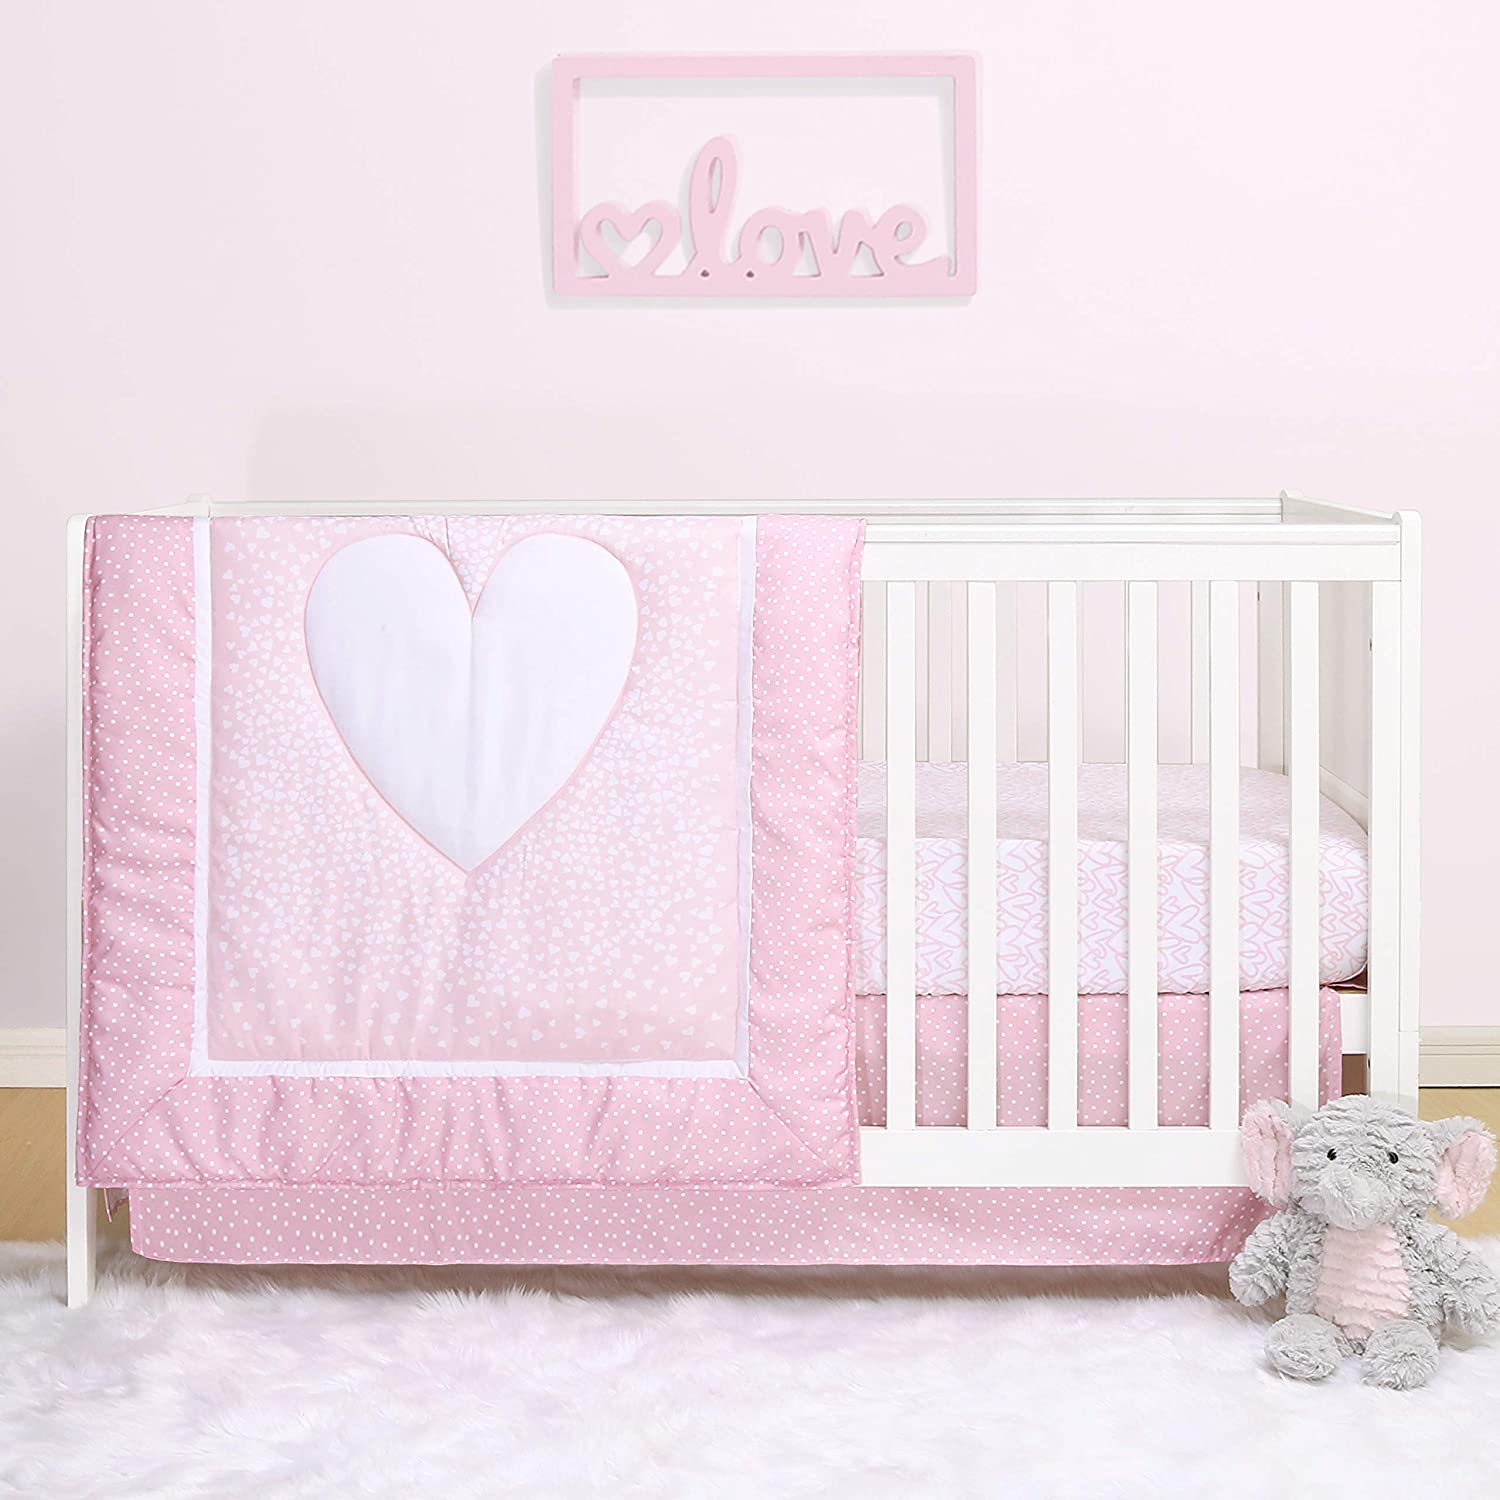 The Peanutshell Hearts Crib Bedding Set for Baby Girls   3 Piece Nursery Set   Baby Quilt, Crib Sheet, and Dust Ruffle